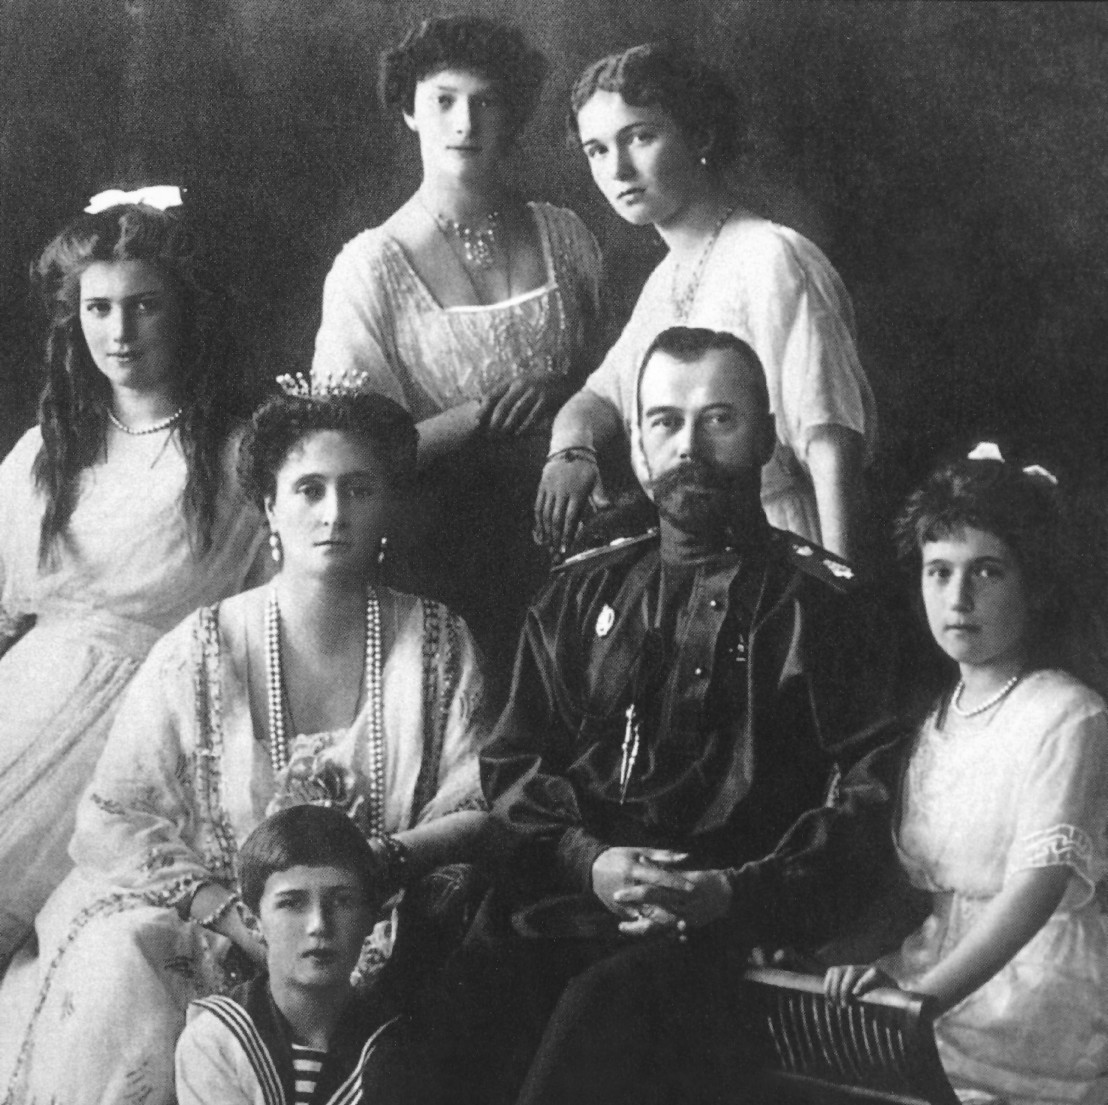 NICHOLAS II (1868-1918). /nCzar of Russia, 1894-1917. Photographed with his family in 1913. Grand Duchesses Maria, Tatiana, Olga, and Anastasia are seated left to right; Tsarevich Alexei is seated in front.